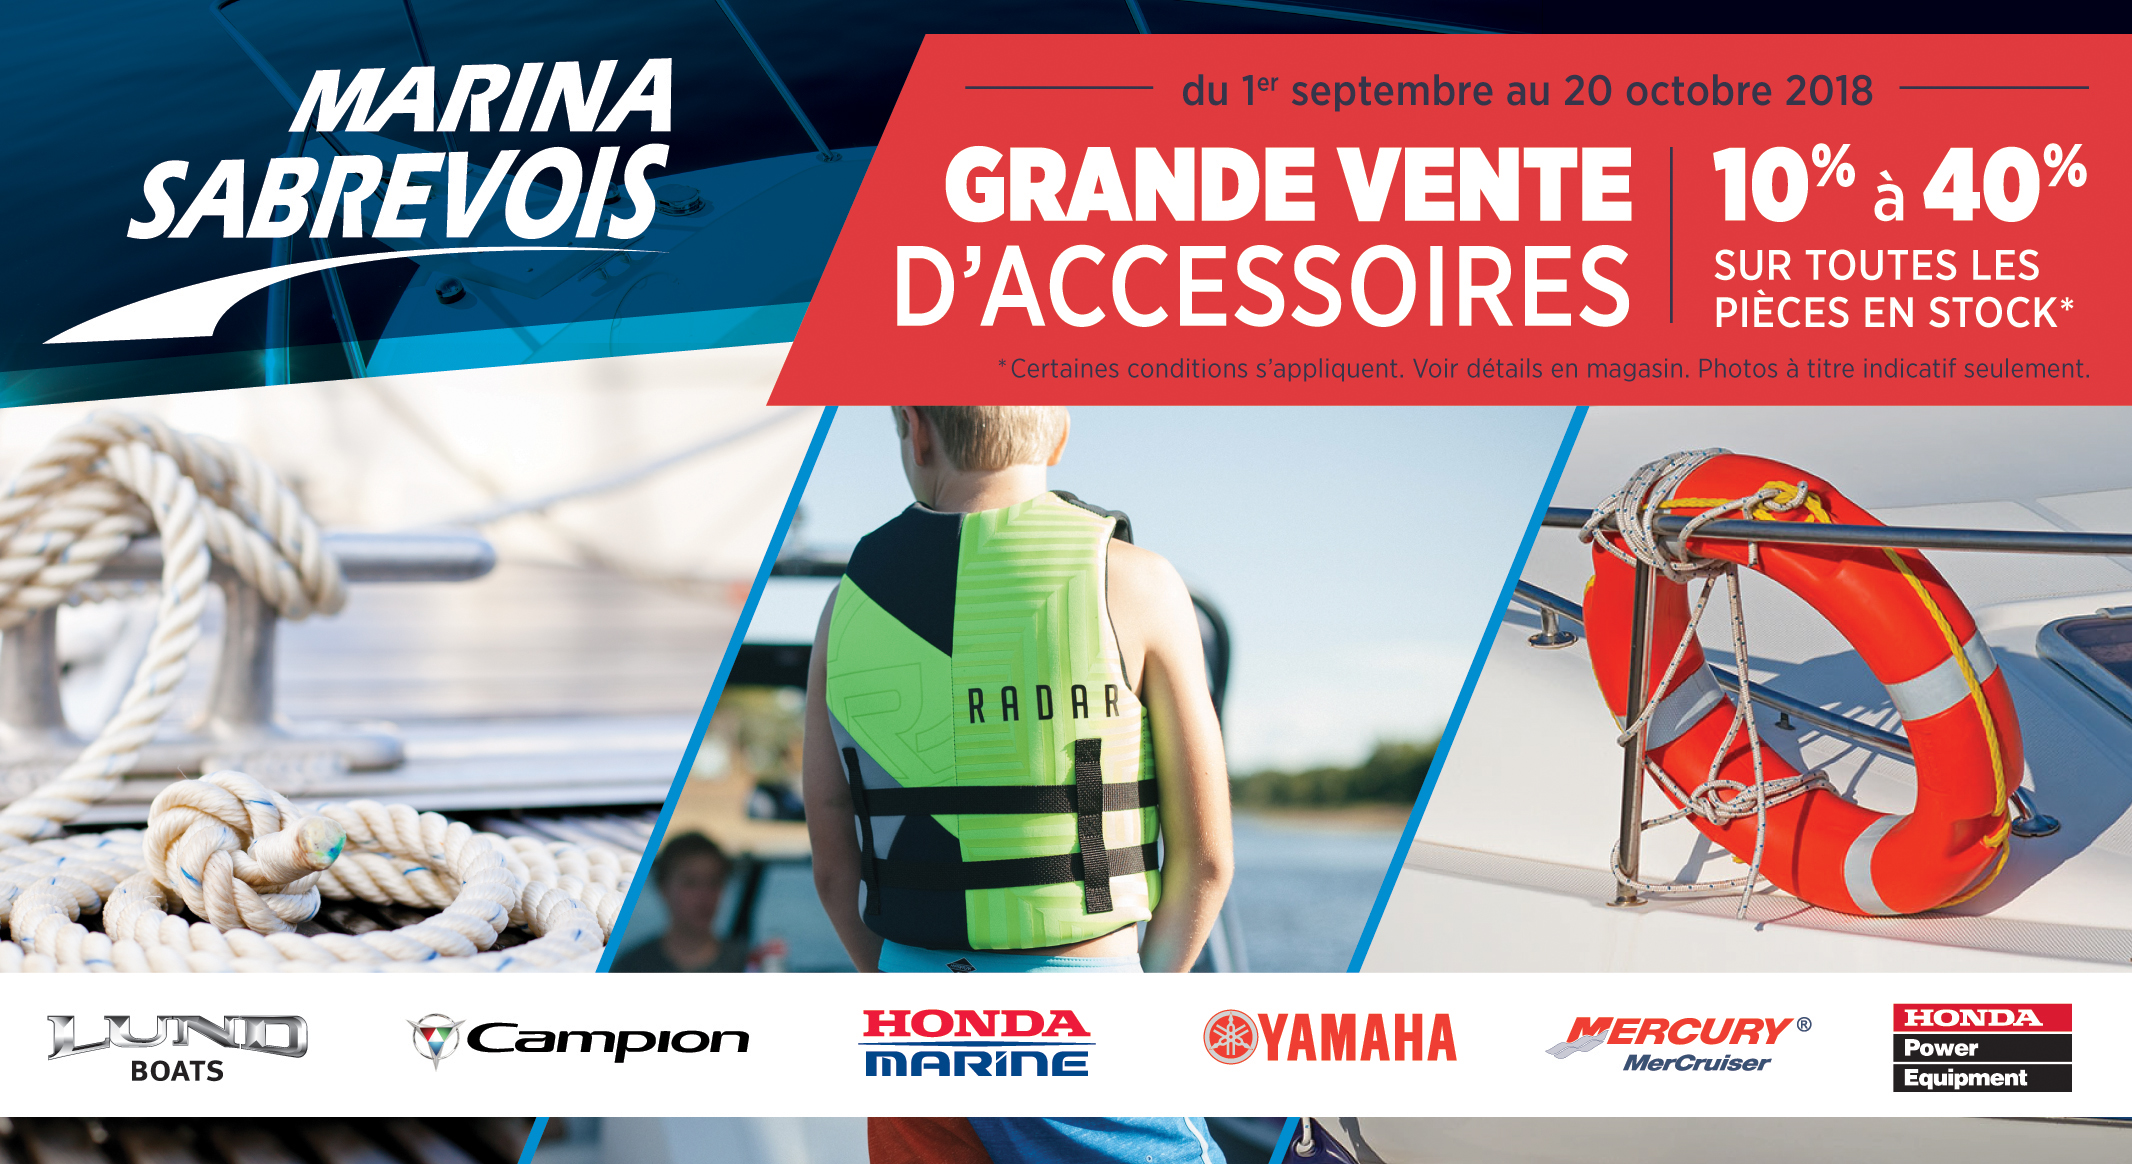 Marina_Sabrevois_Vente-accessoires-SiteWeb_aout2018_v1